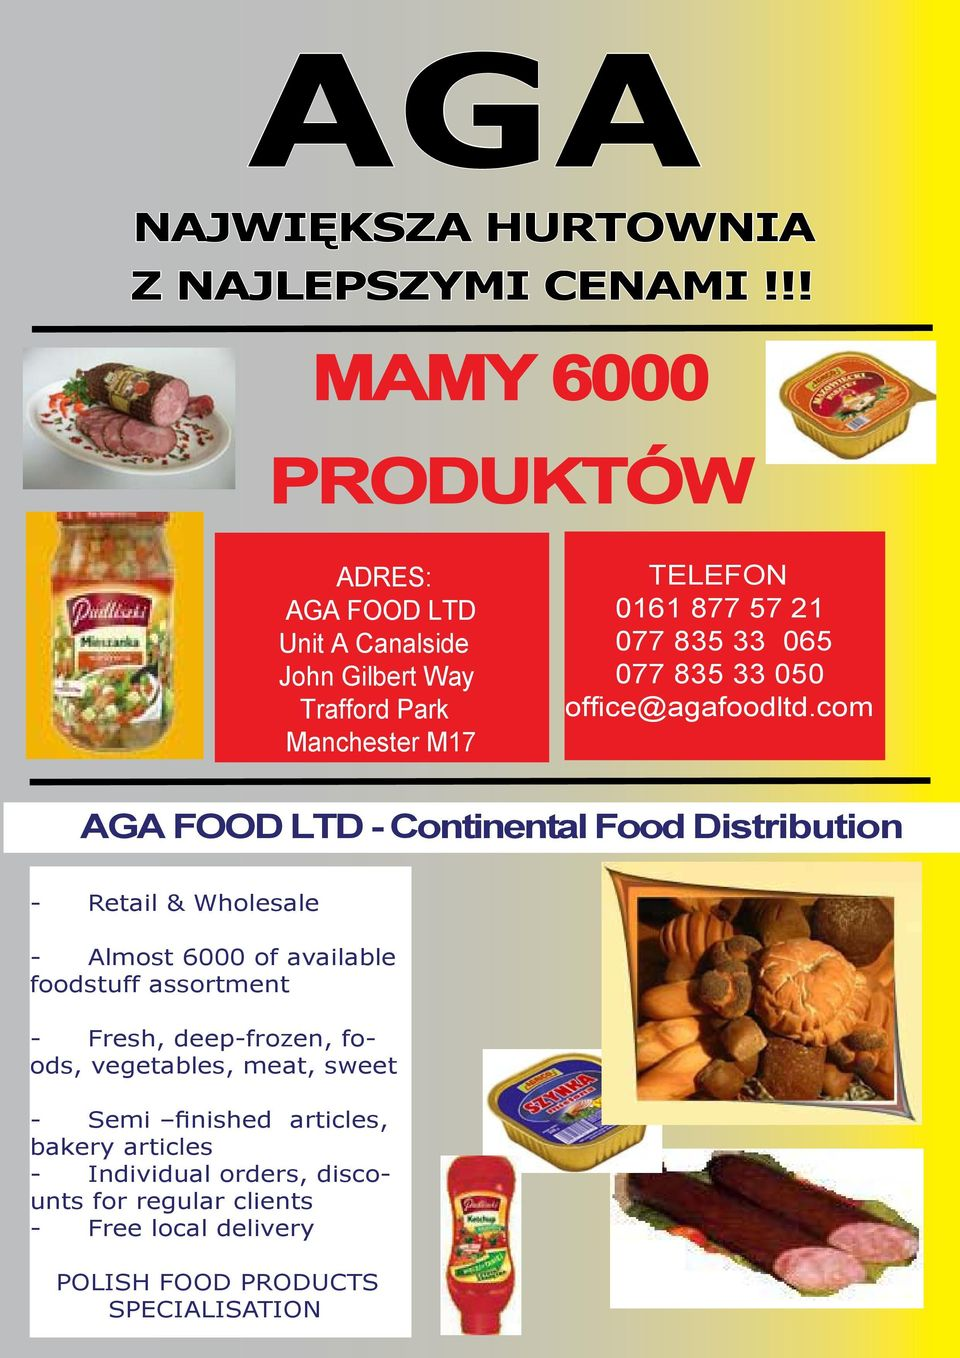 33 0655 077 835 33 050 office@agafoodltd.